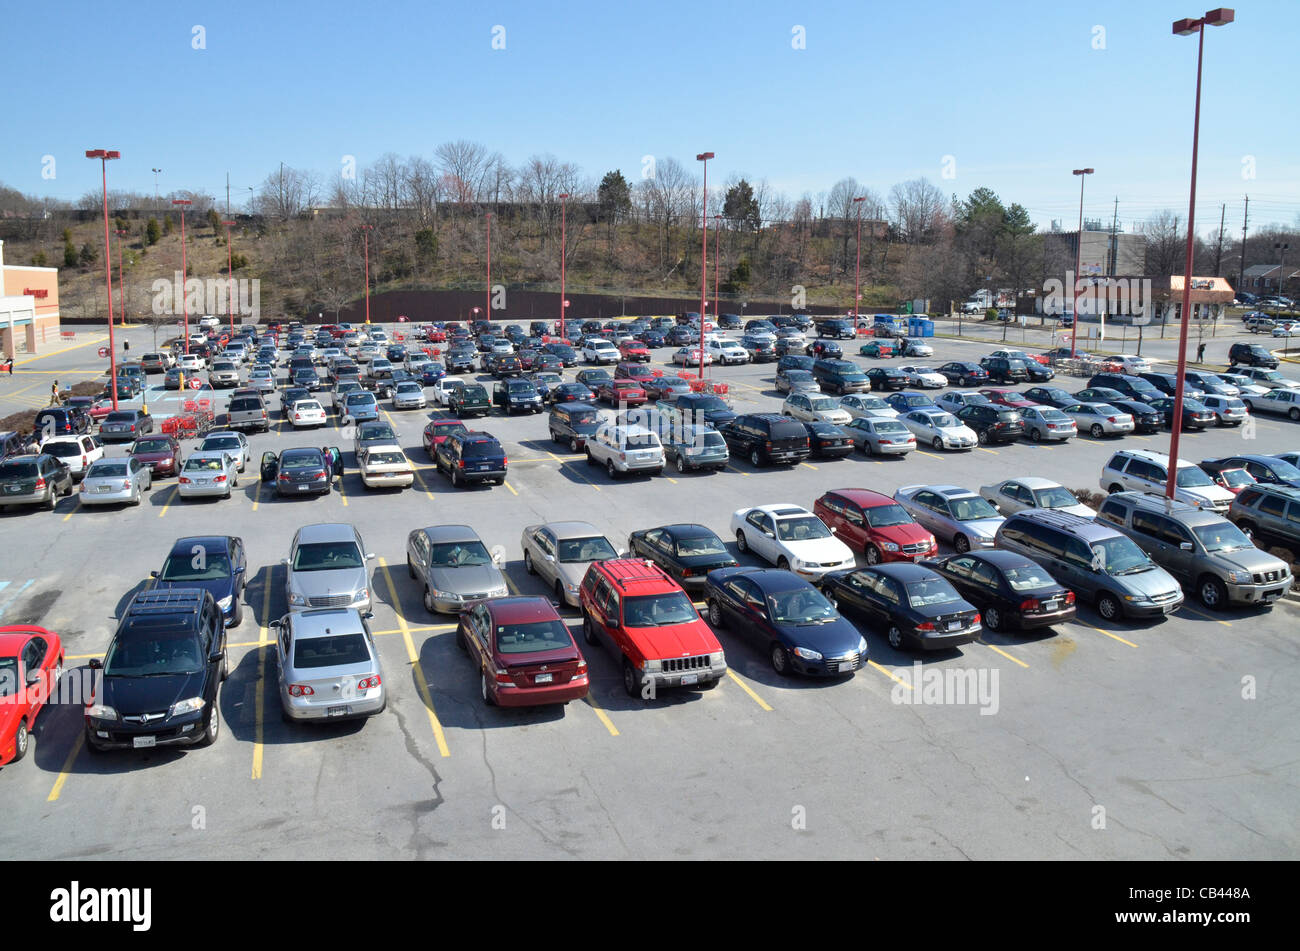 Parking Lot Full Of Cars Stock Photo 41273130 Alamy